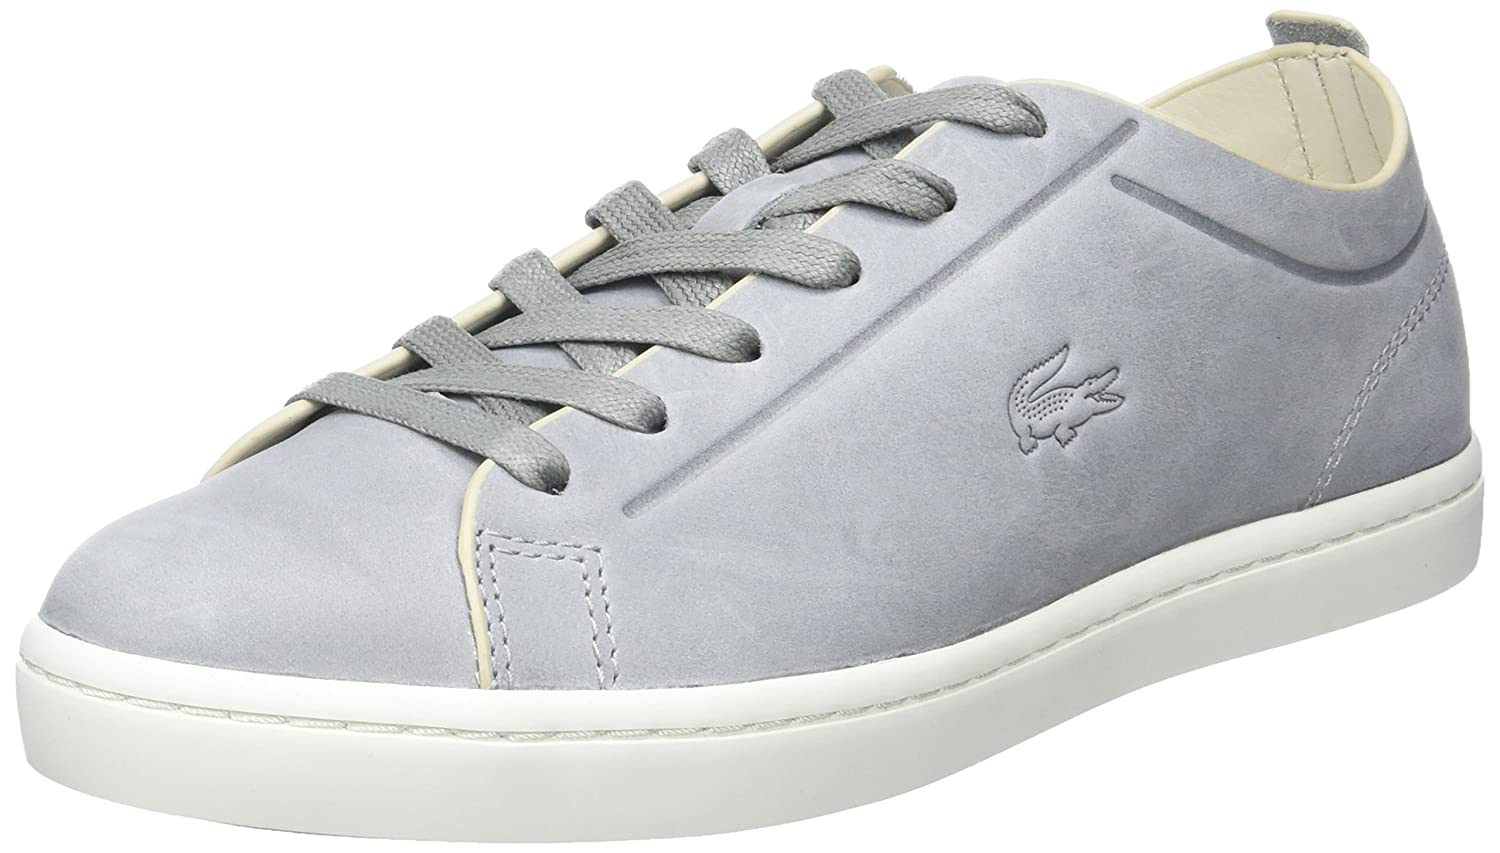 Lacoste Straightset 117 2 Caw Lt Gry amazon-shoes grigio